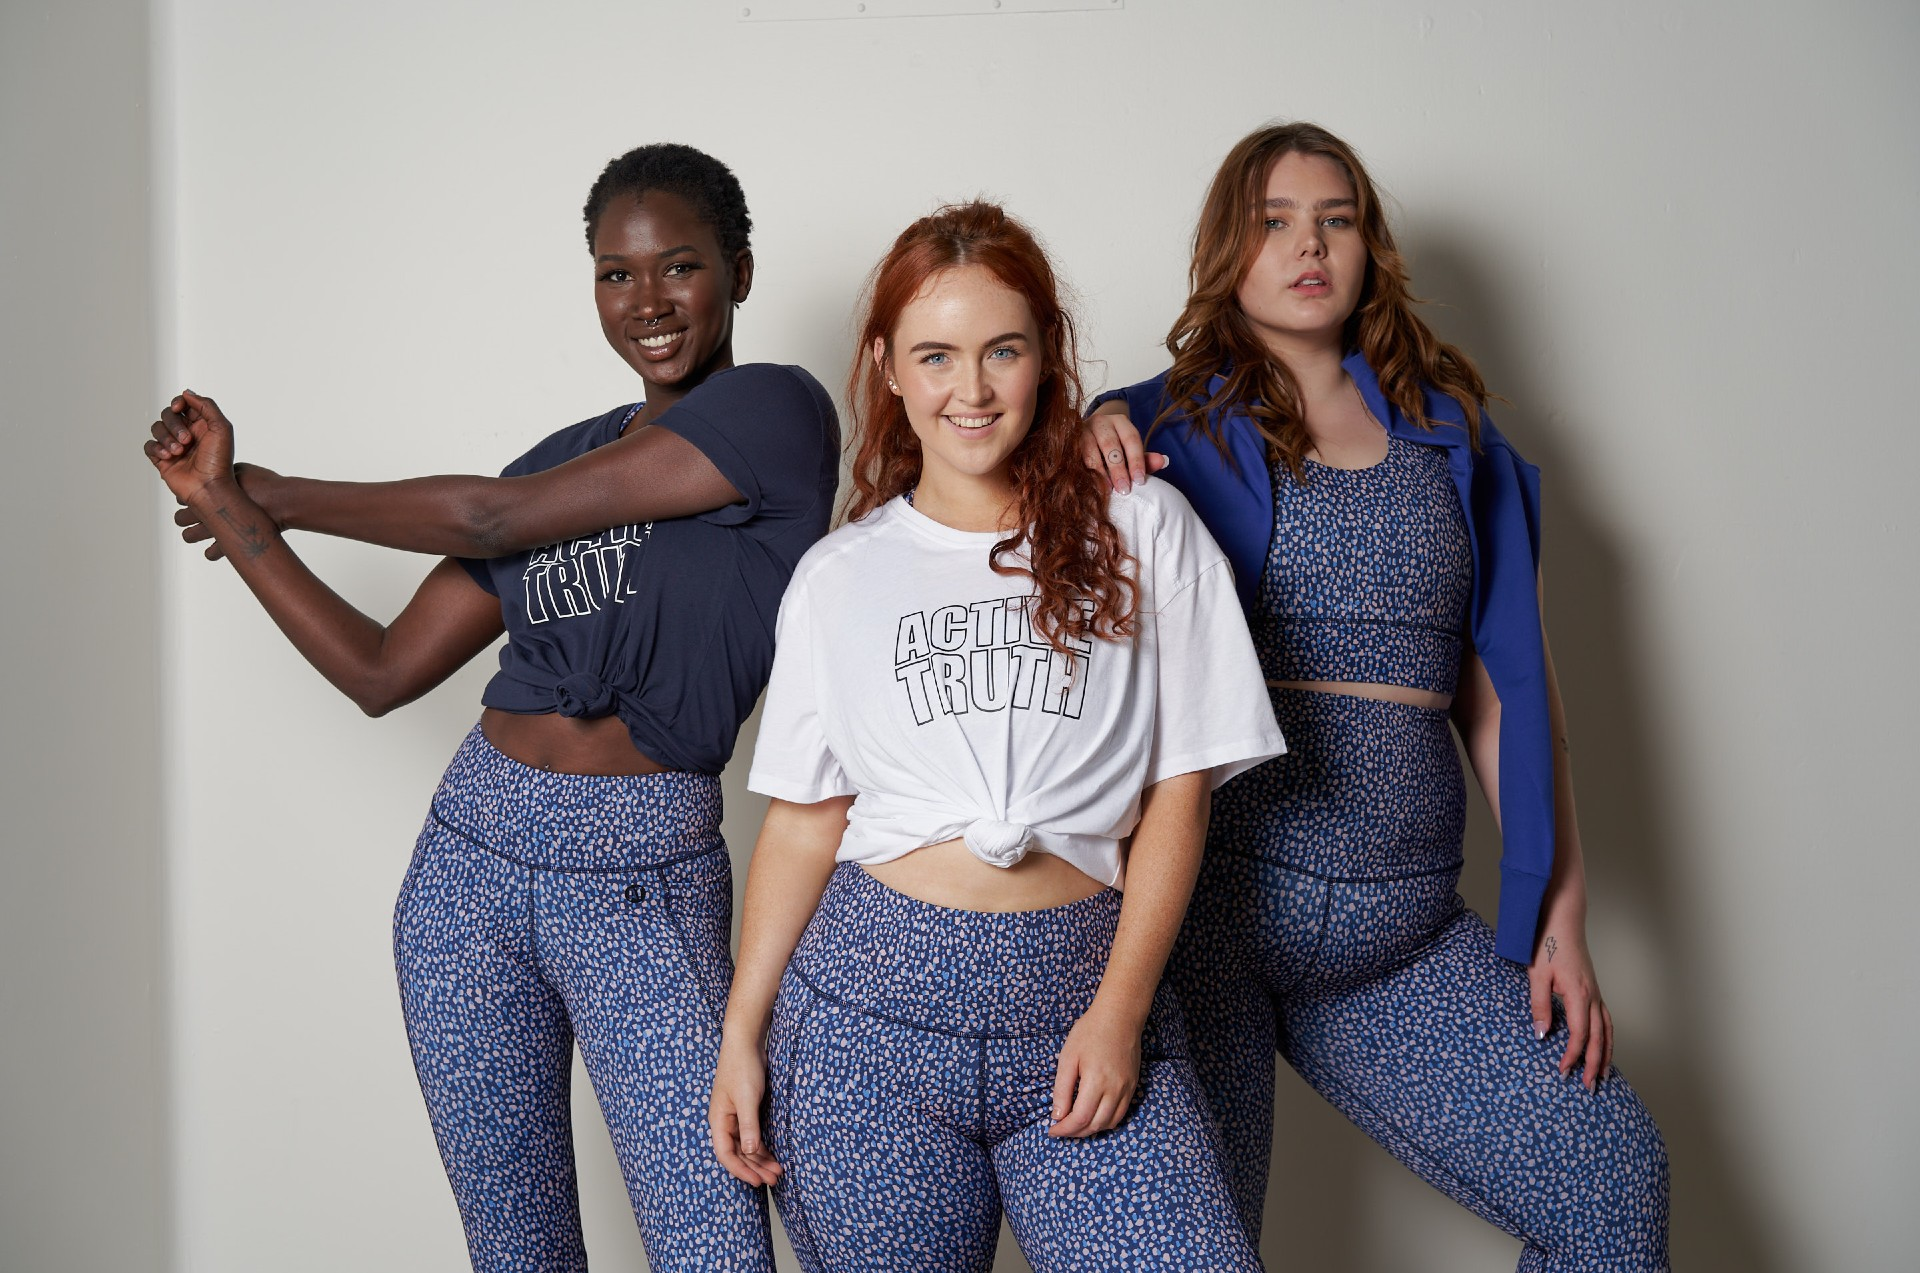 Active Truth activewear